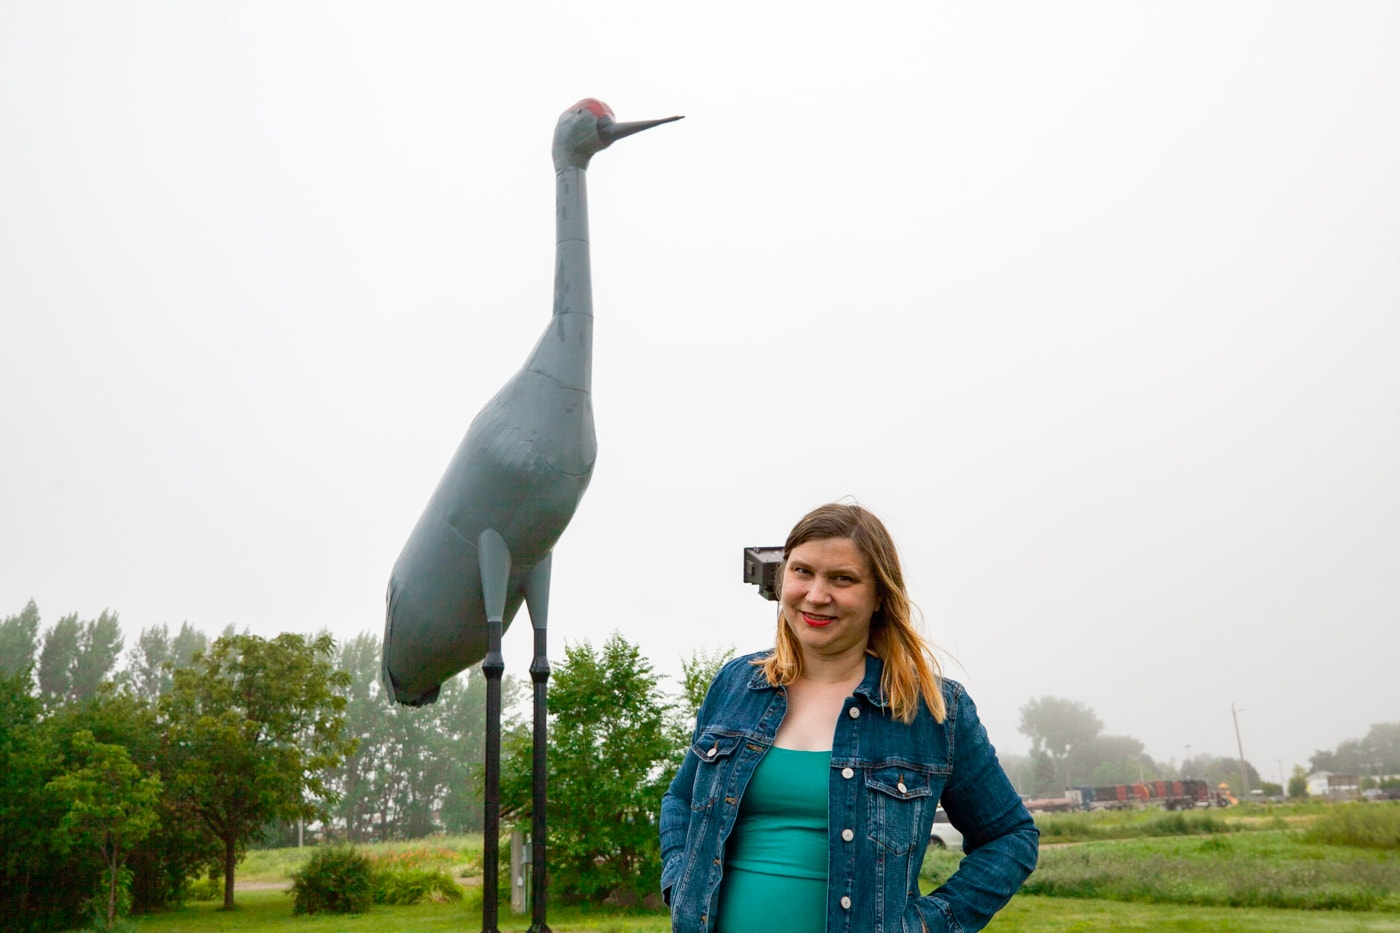 Sandy the World's Largest Sandhill Crane in Steele, North Dakota | North Dakota Roadside Attractions